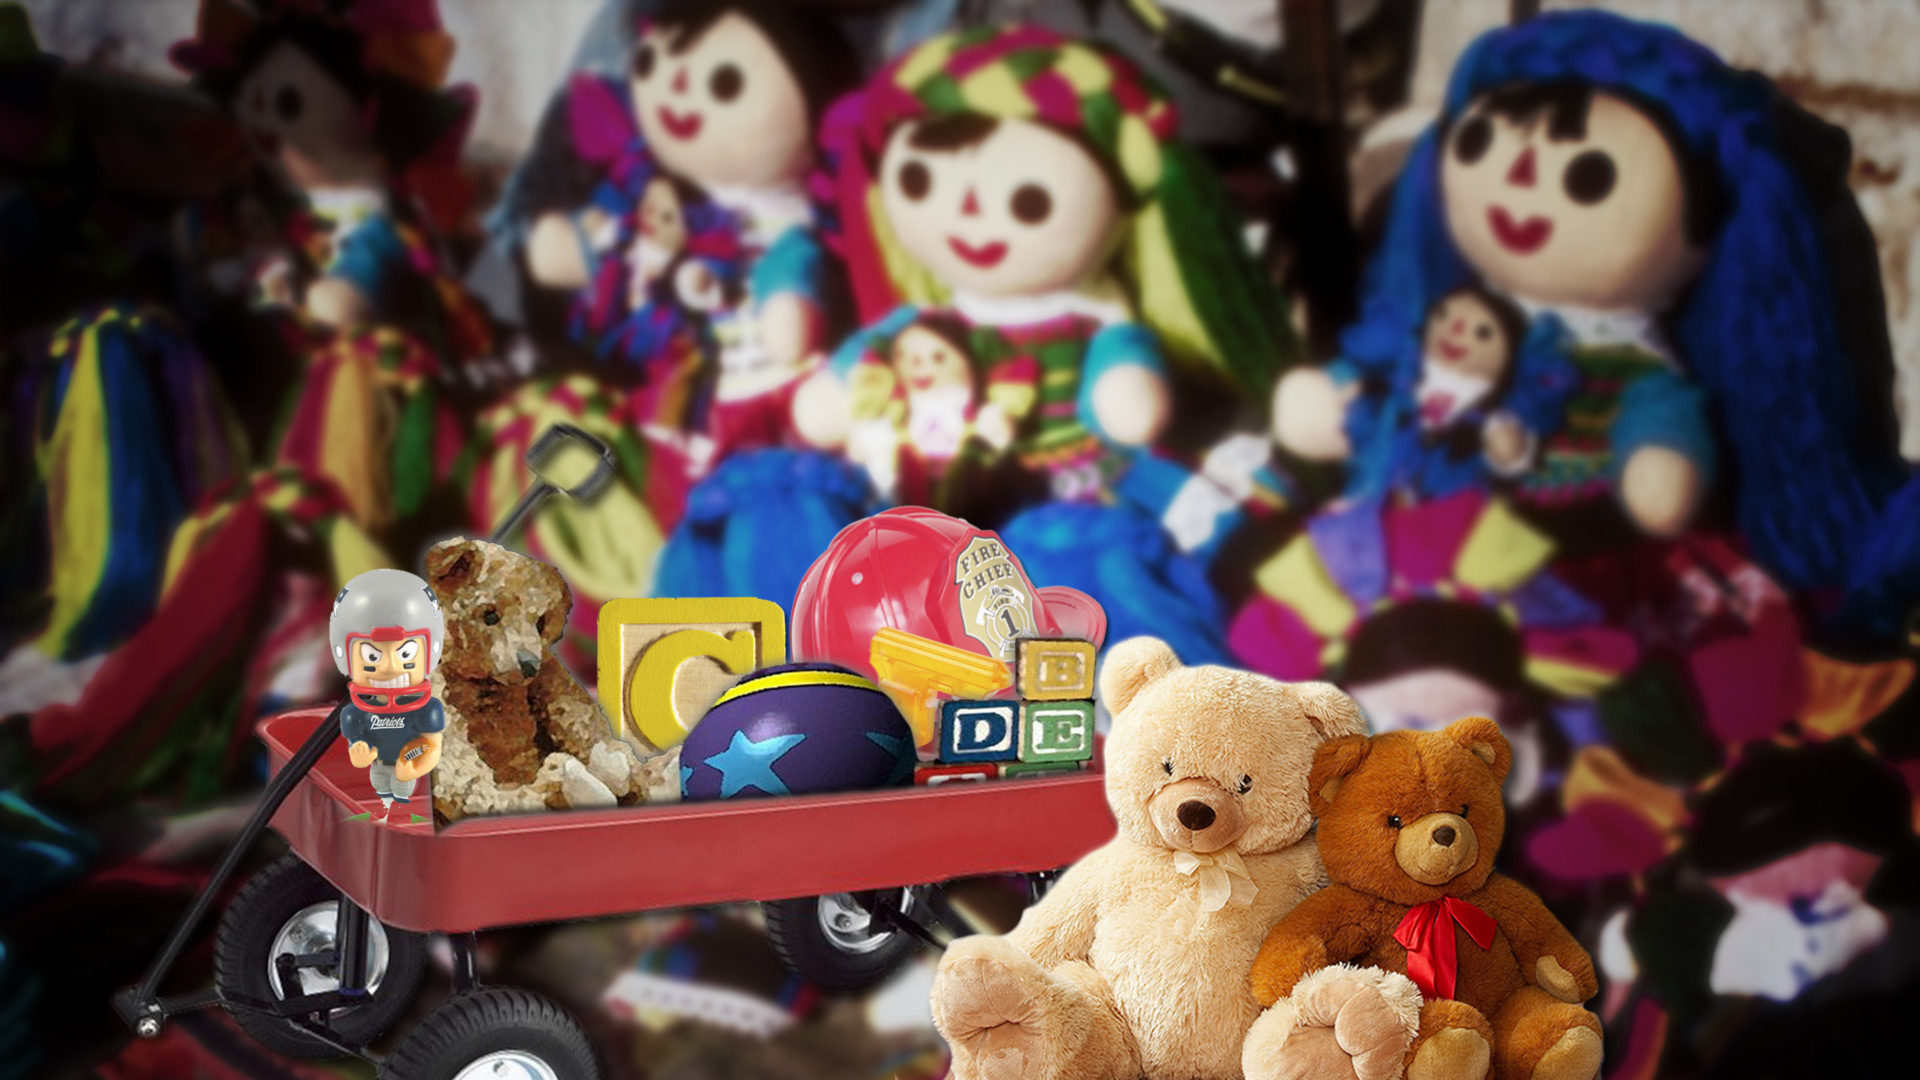 Childrens-Toys_97339